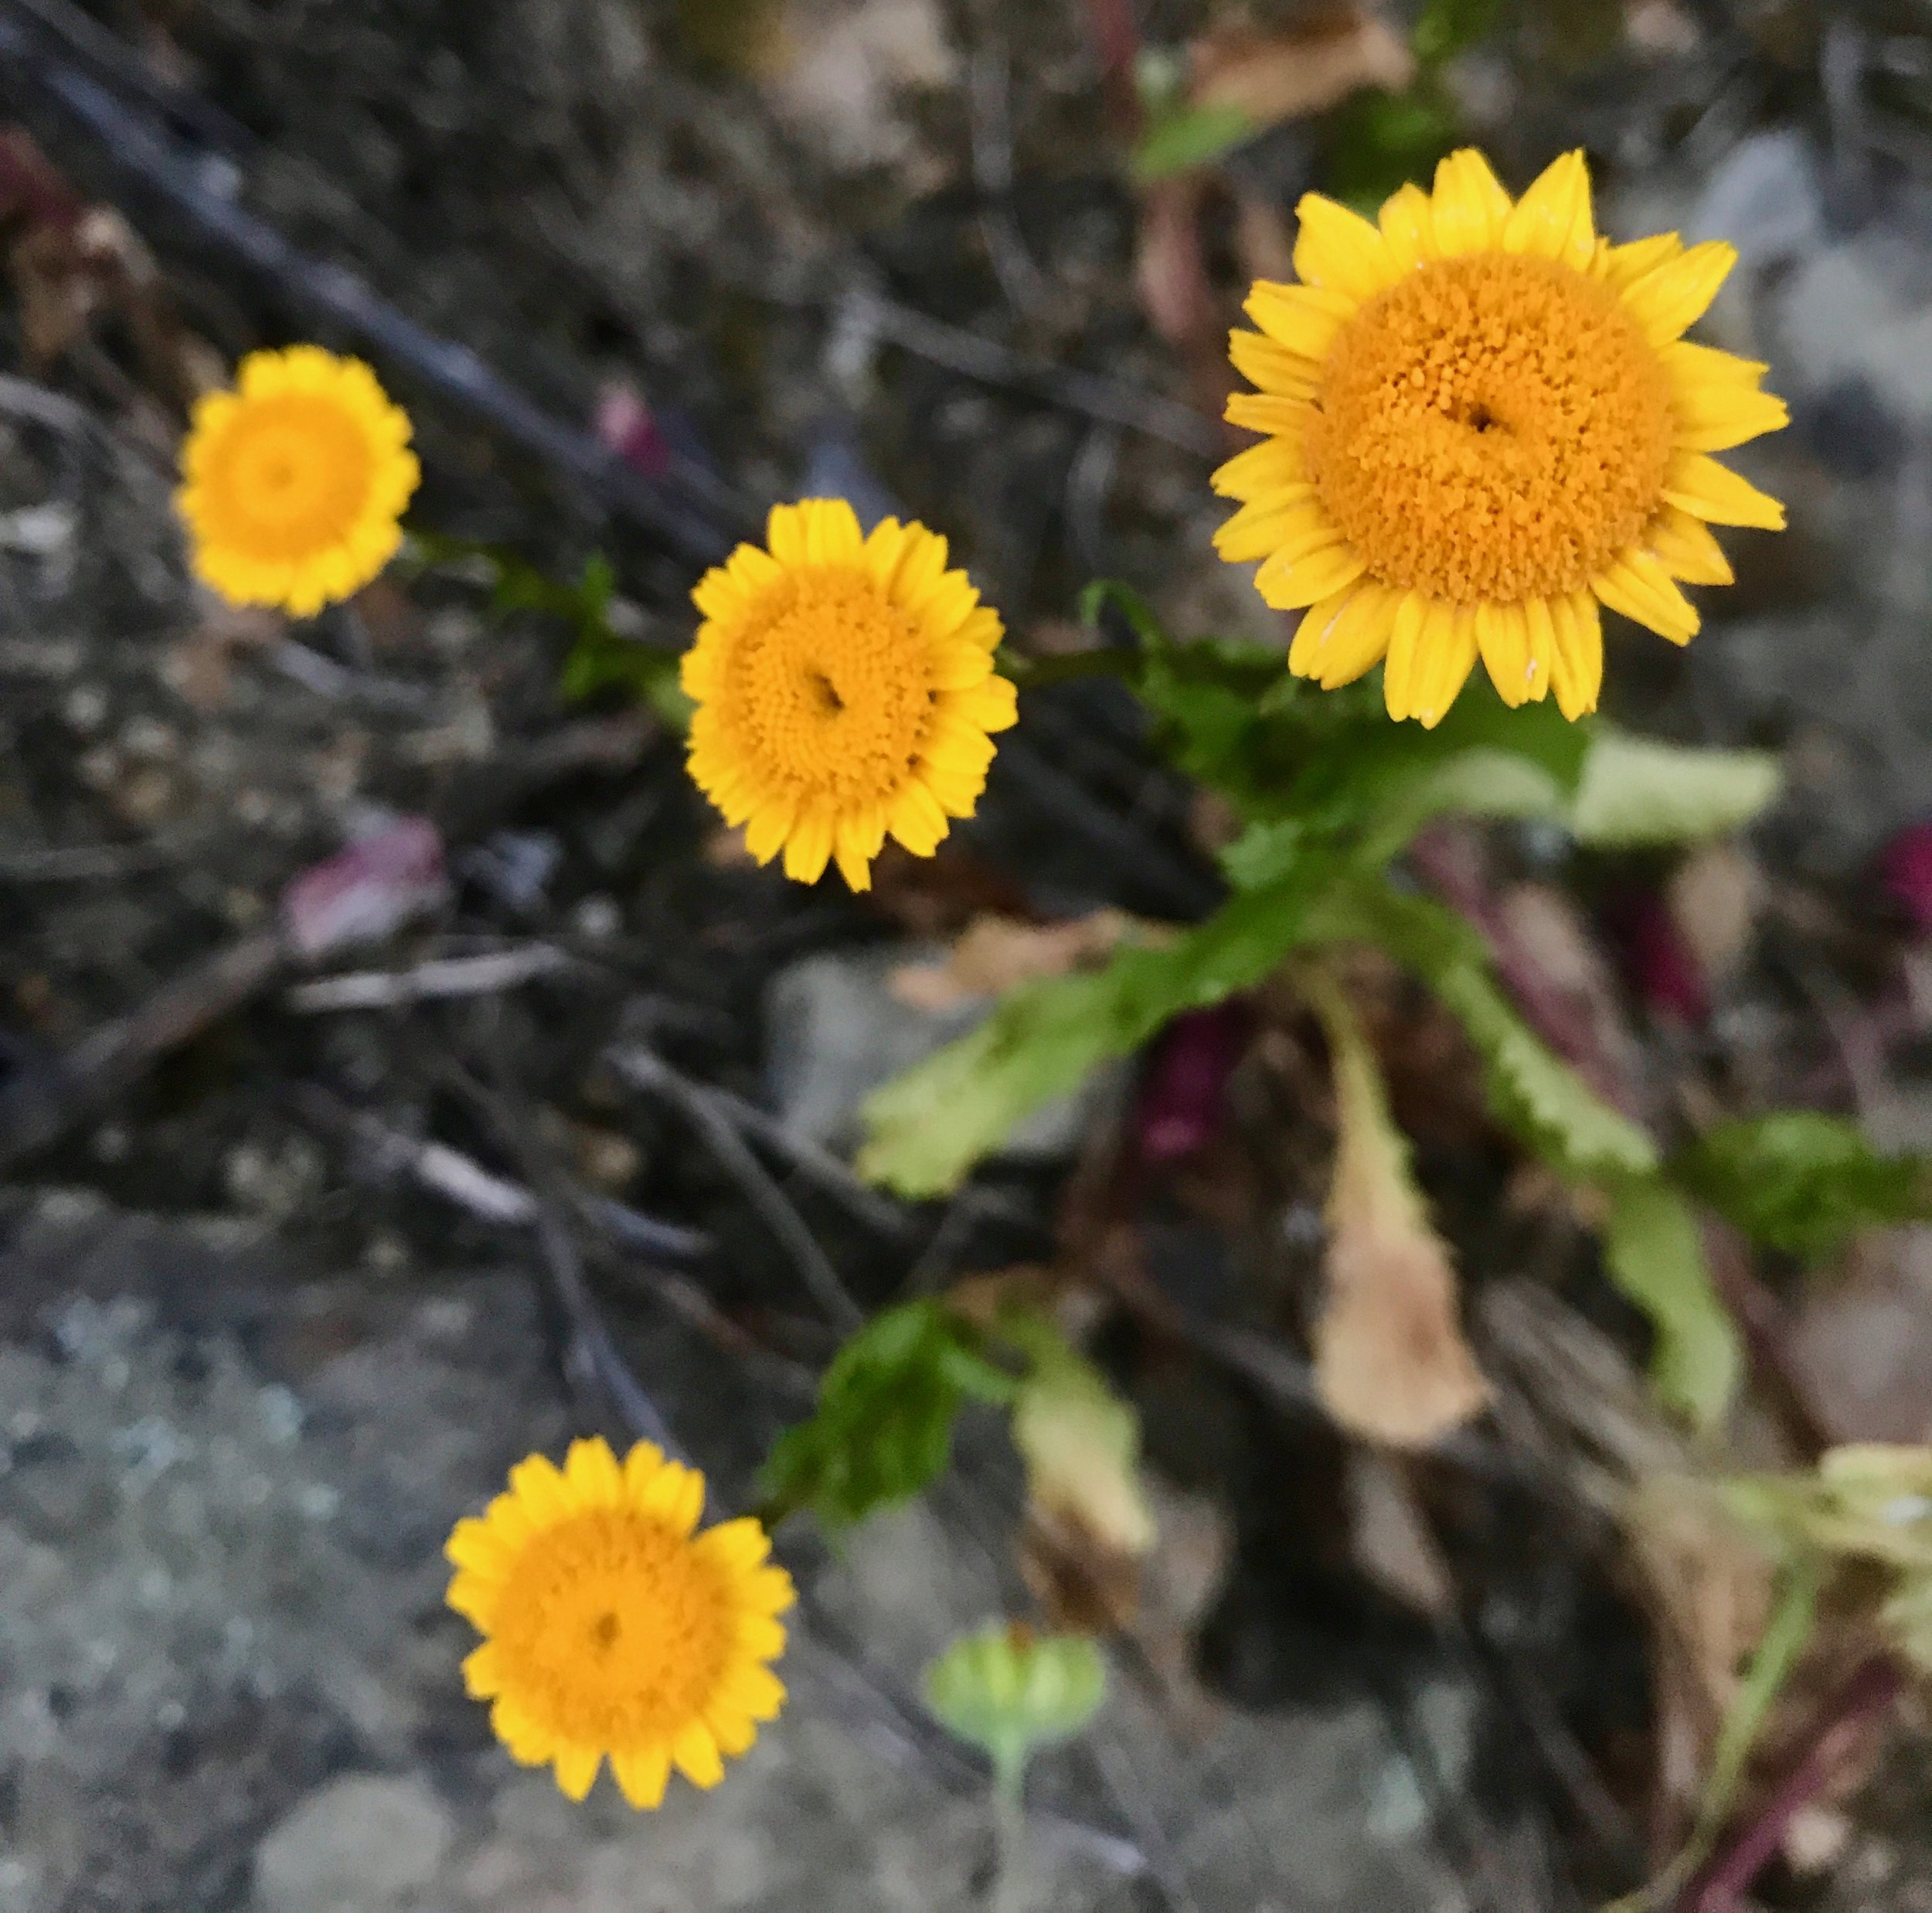 Wild marigold ( Calendula arvensis ) grows in abundance and is a medicinal herb used to treat skin inflammations. Add its edible petals to your salads for a tasty bit of color!